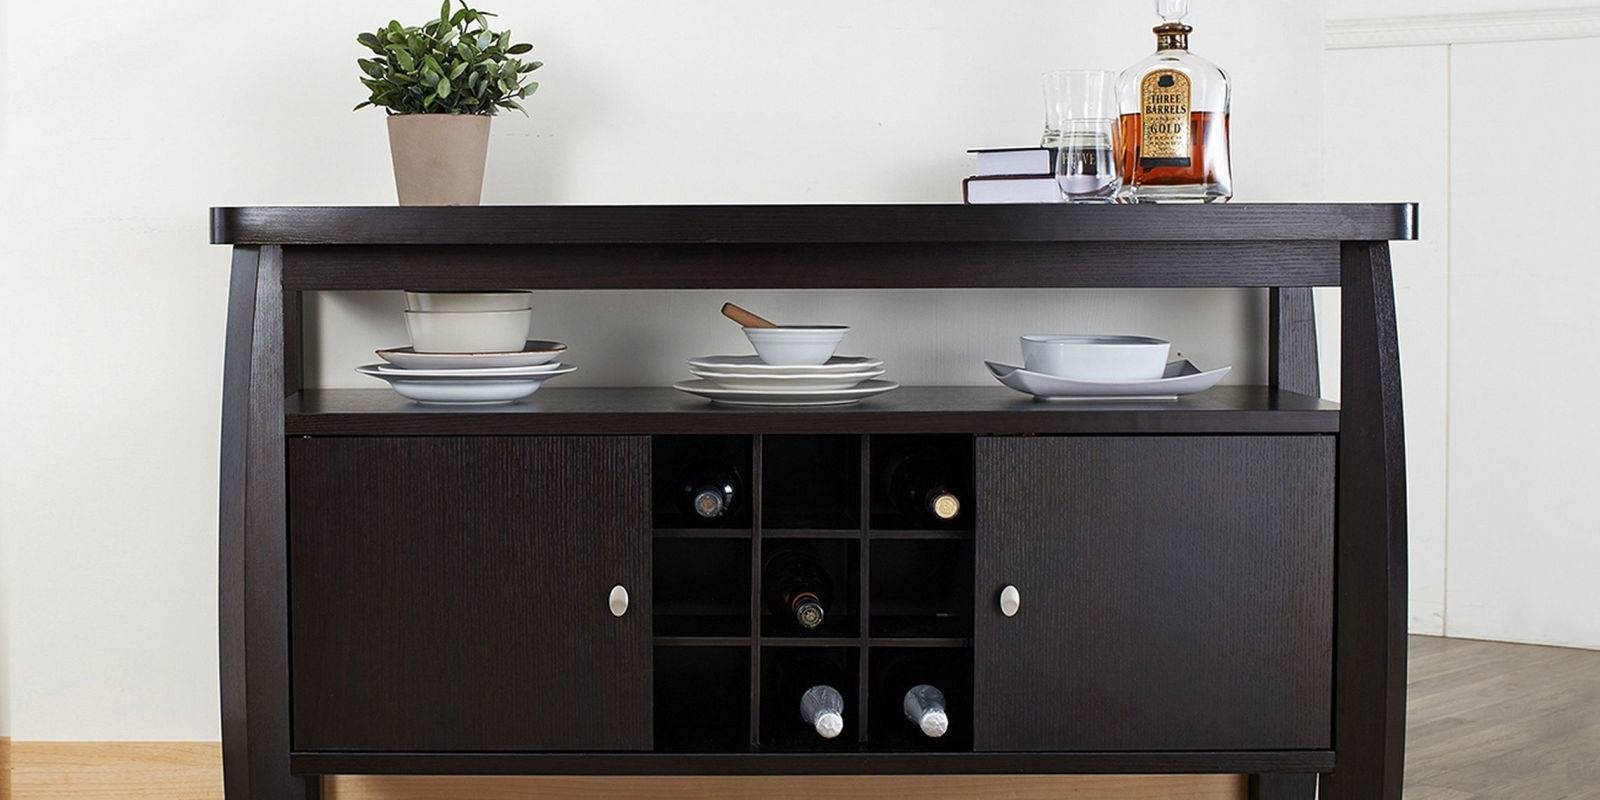 11 Best Sideboards And Buffets In 2018 – Reviews Of Sideboards Within Dining Room Sideboards And Buffets (View 9 of 15)